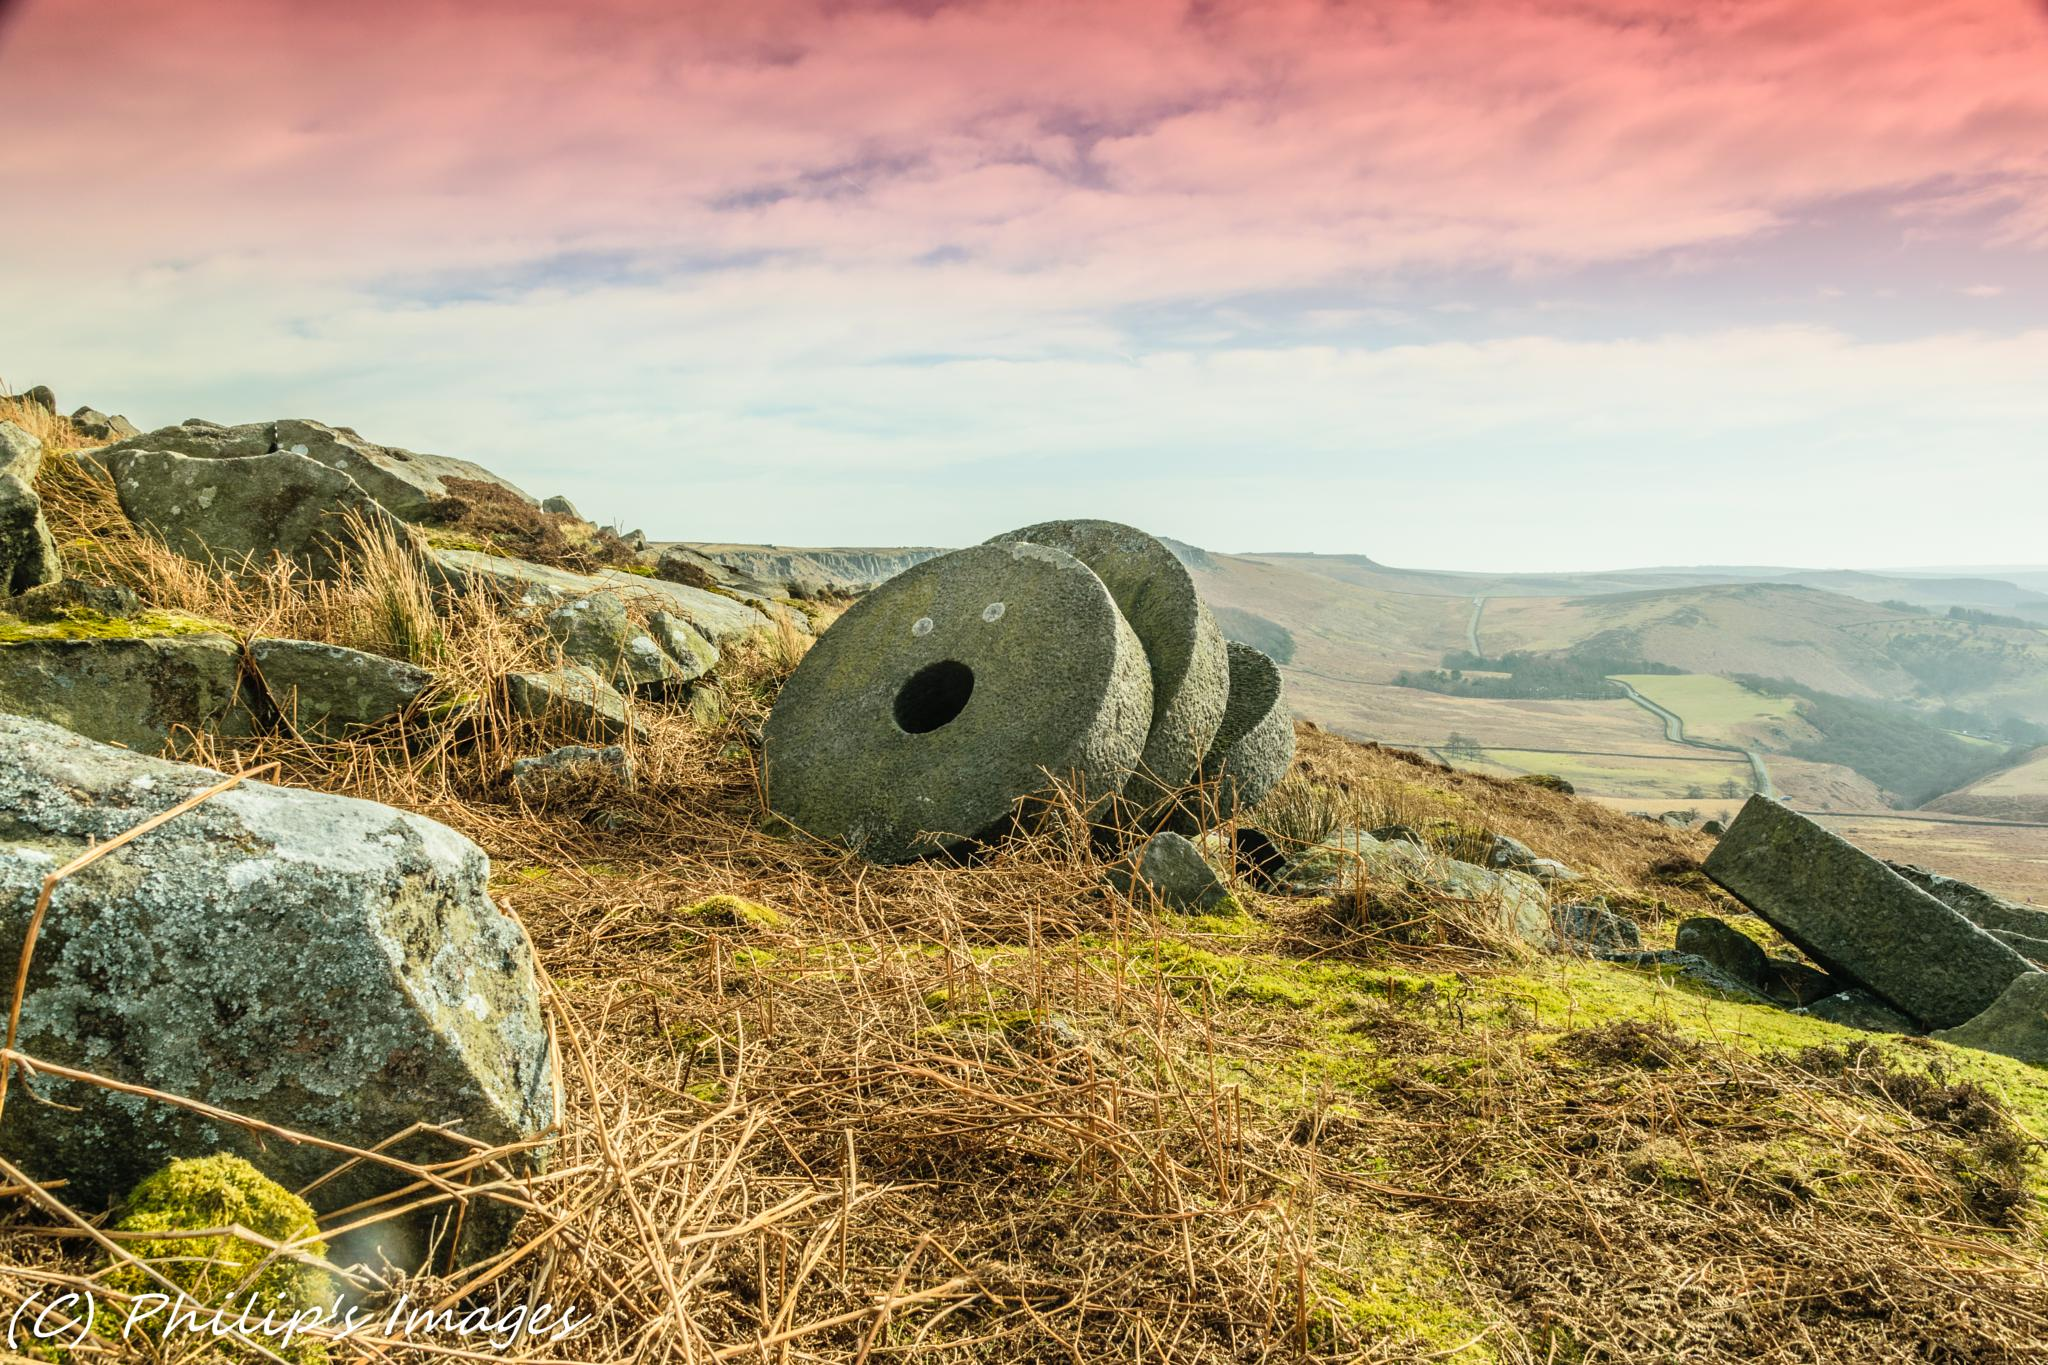 Mill Stones by philips images